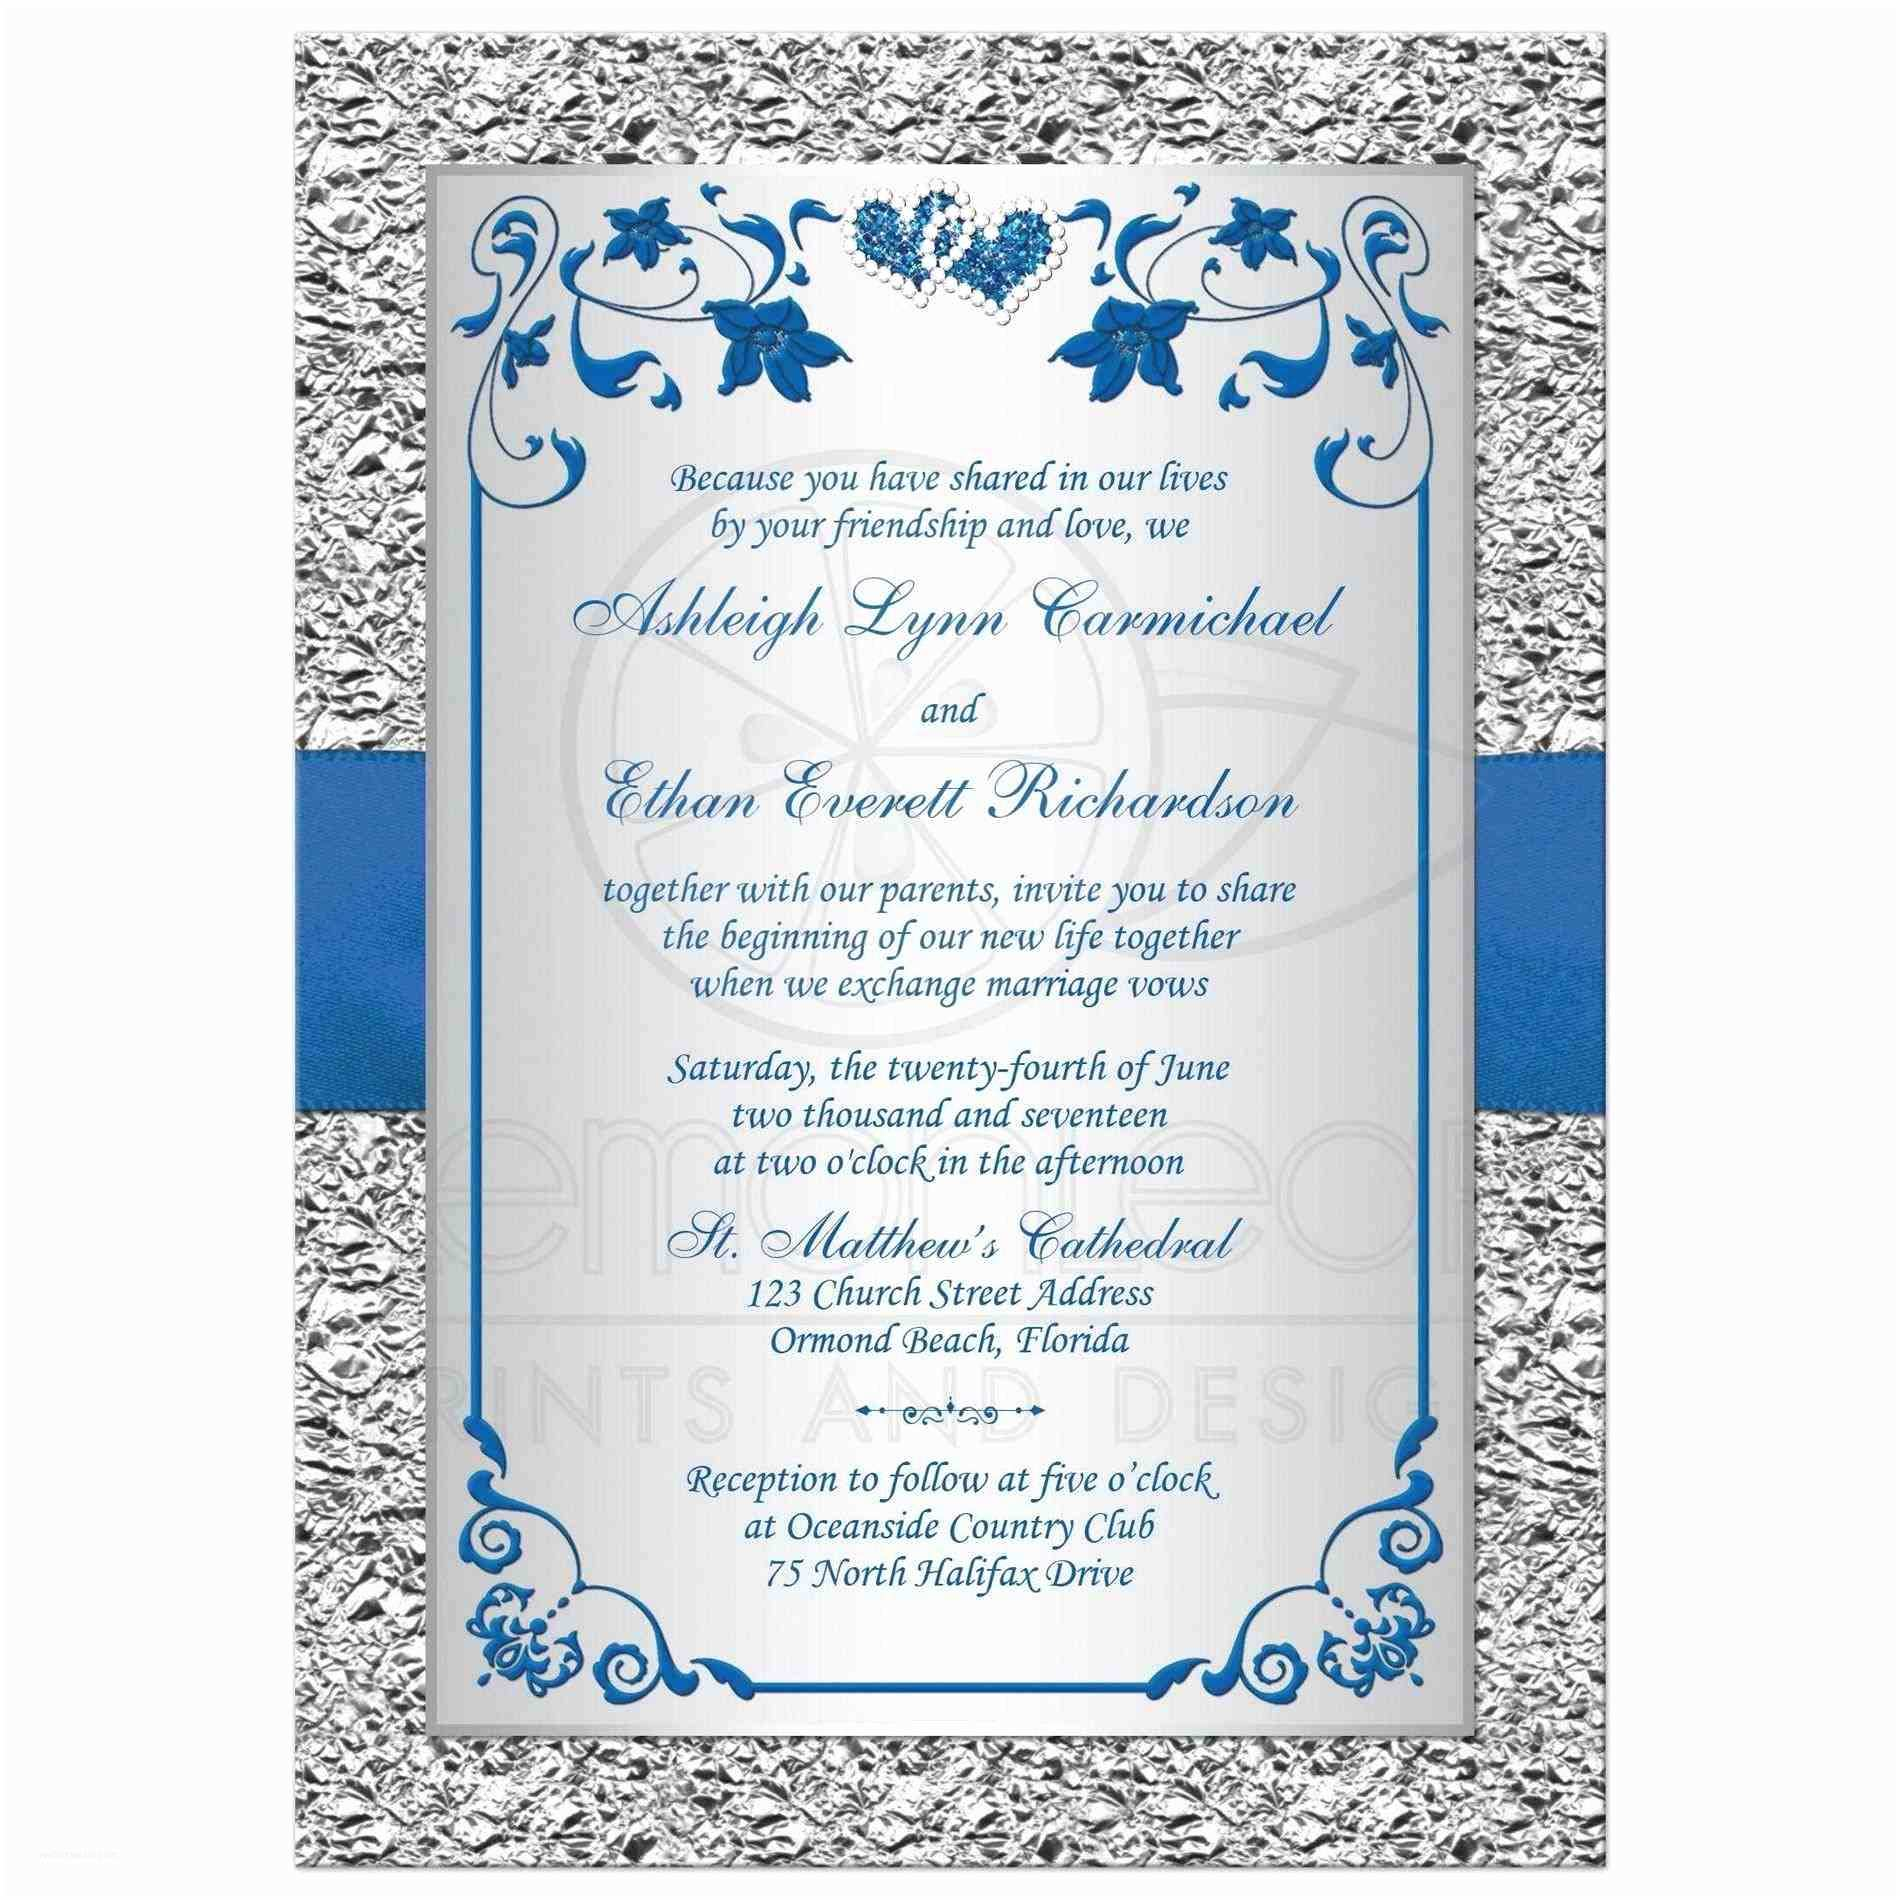 Blue and Silver Wedding Invitations Royal Blue and Silver Wedding Invitations